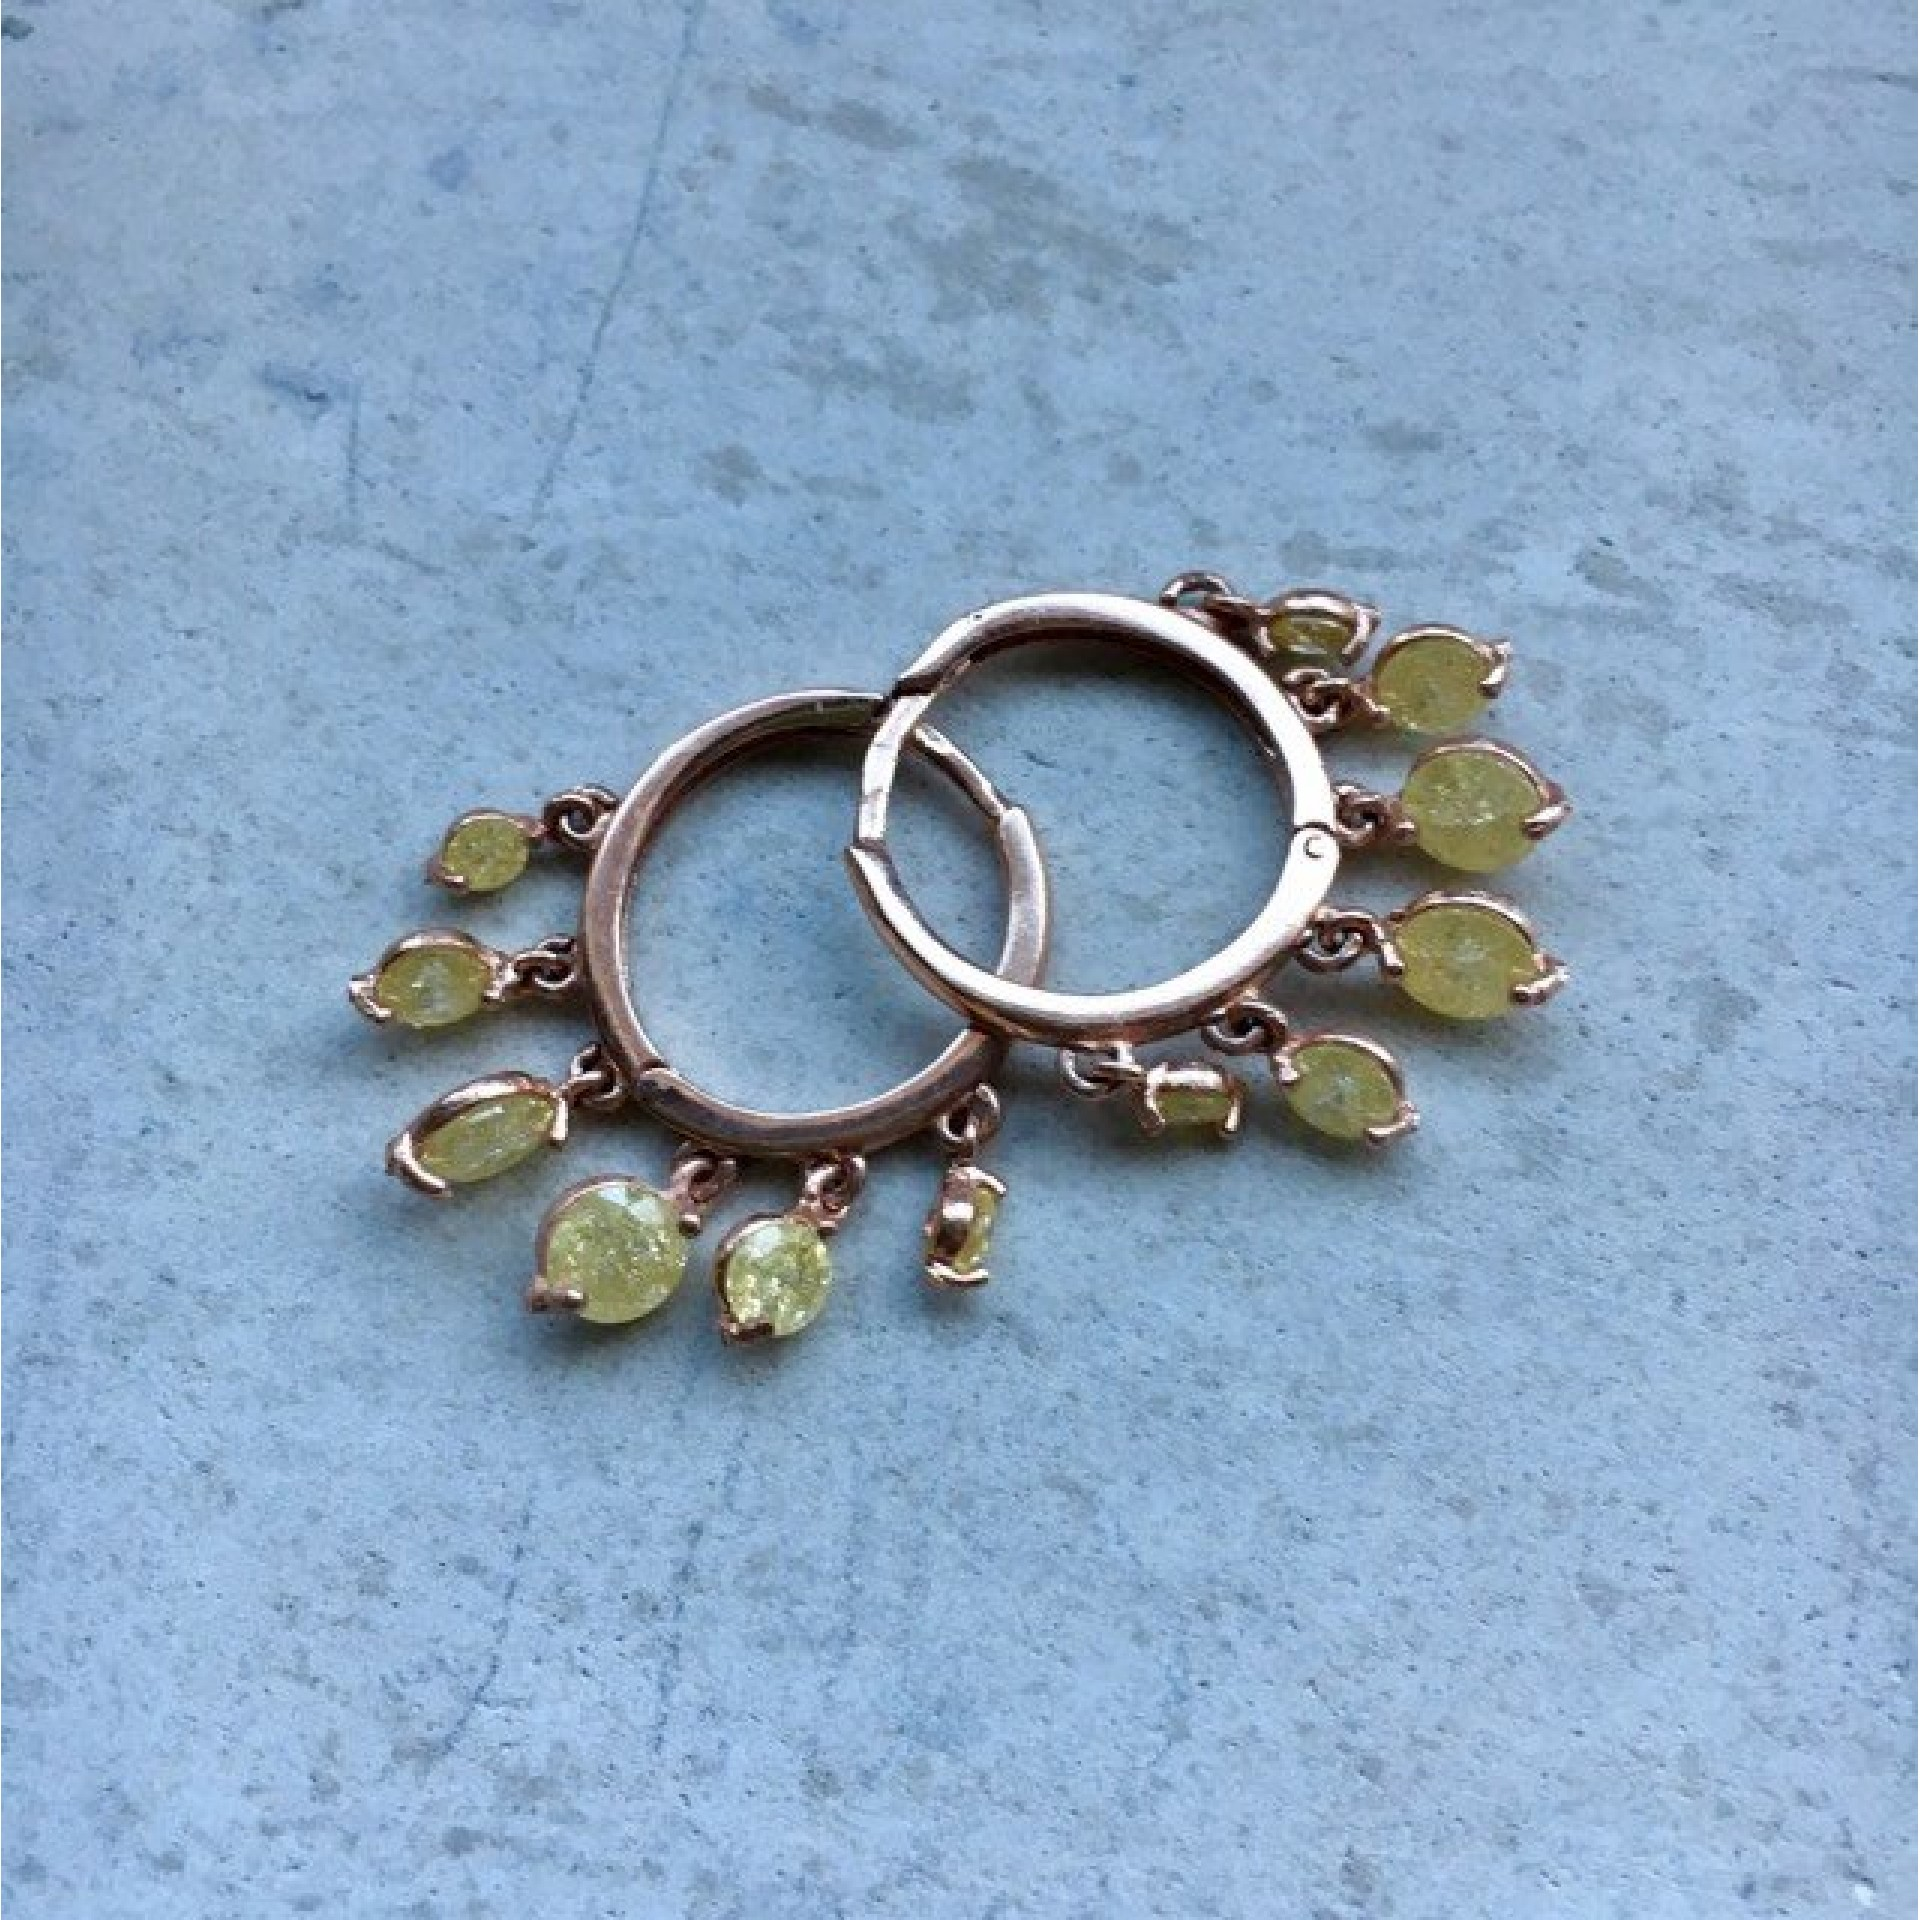 The Yellow's silver earrings